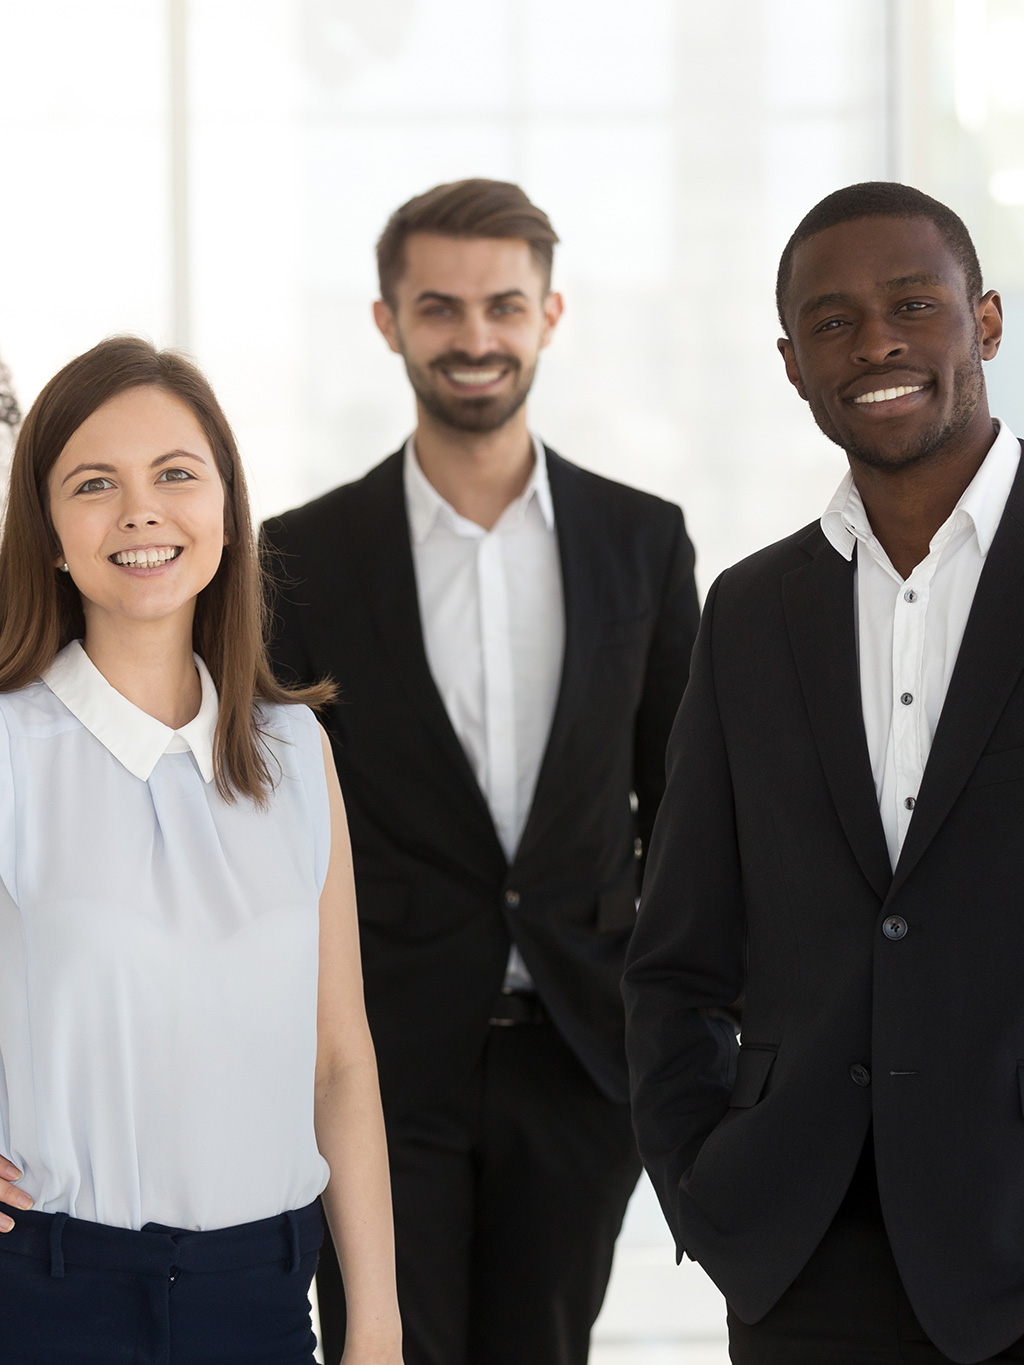 Toronto Staffing Agency, Temp Agency and Staffing Solutions